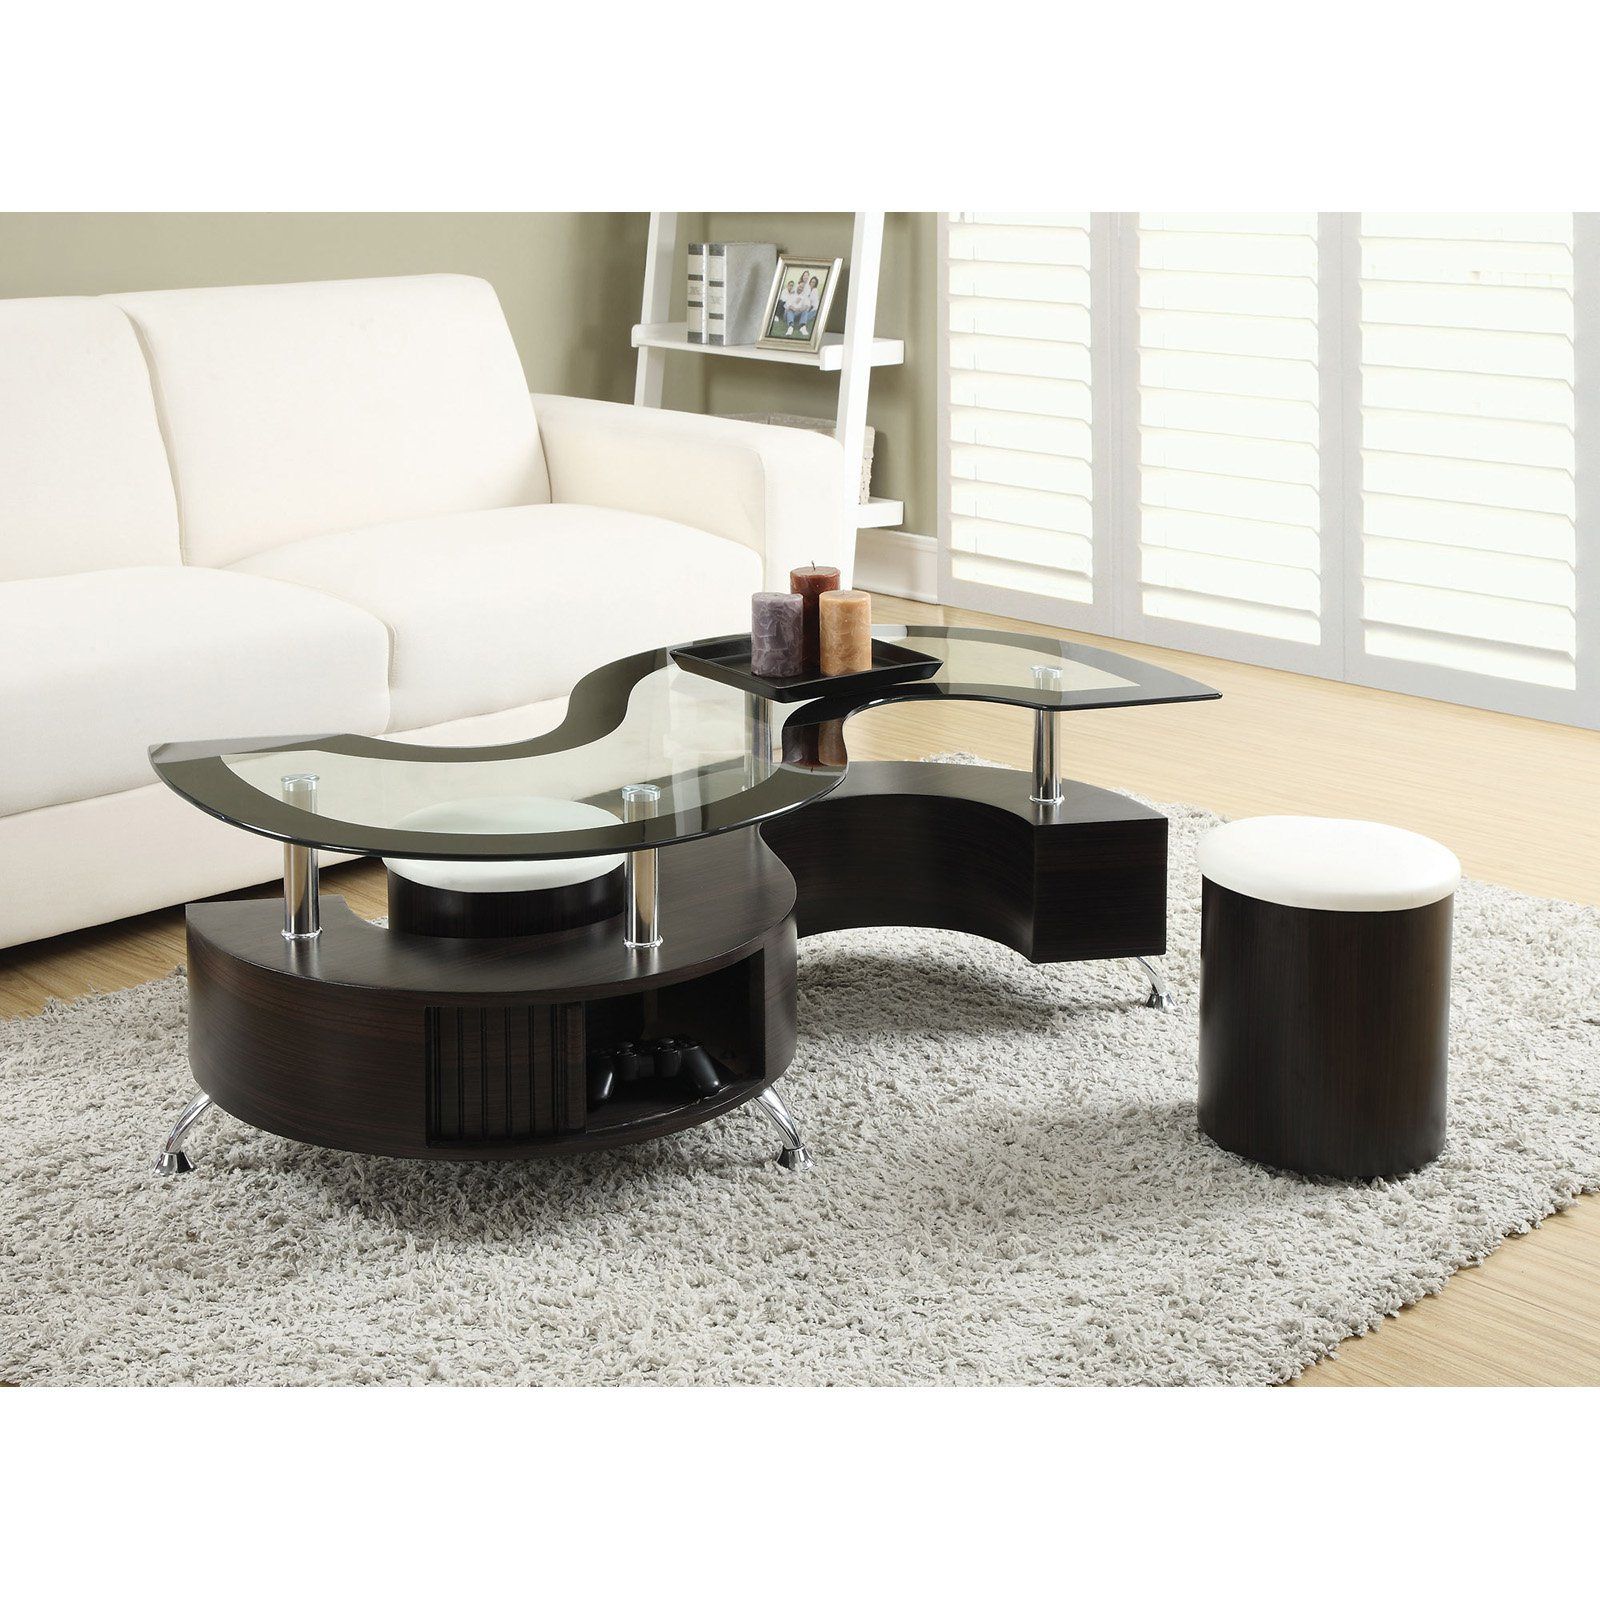 Wonderful Coaster Furniture Glass Top Coffee Table With Stool